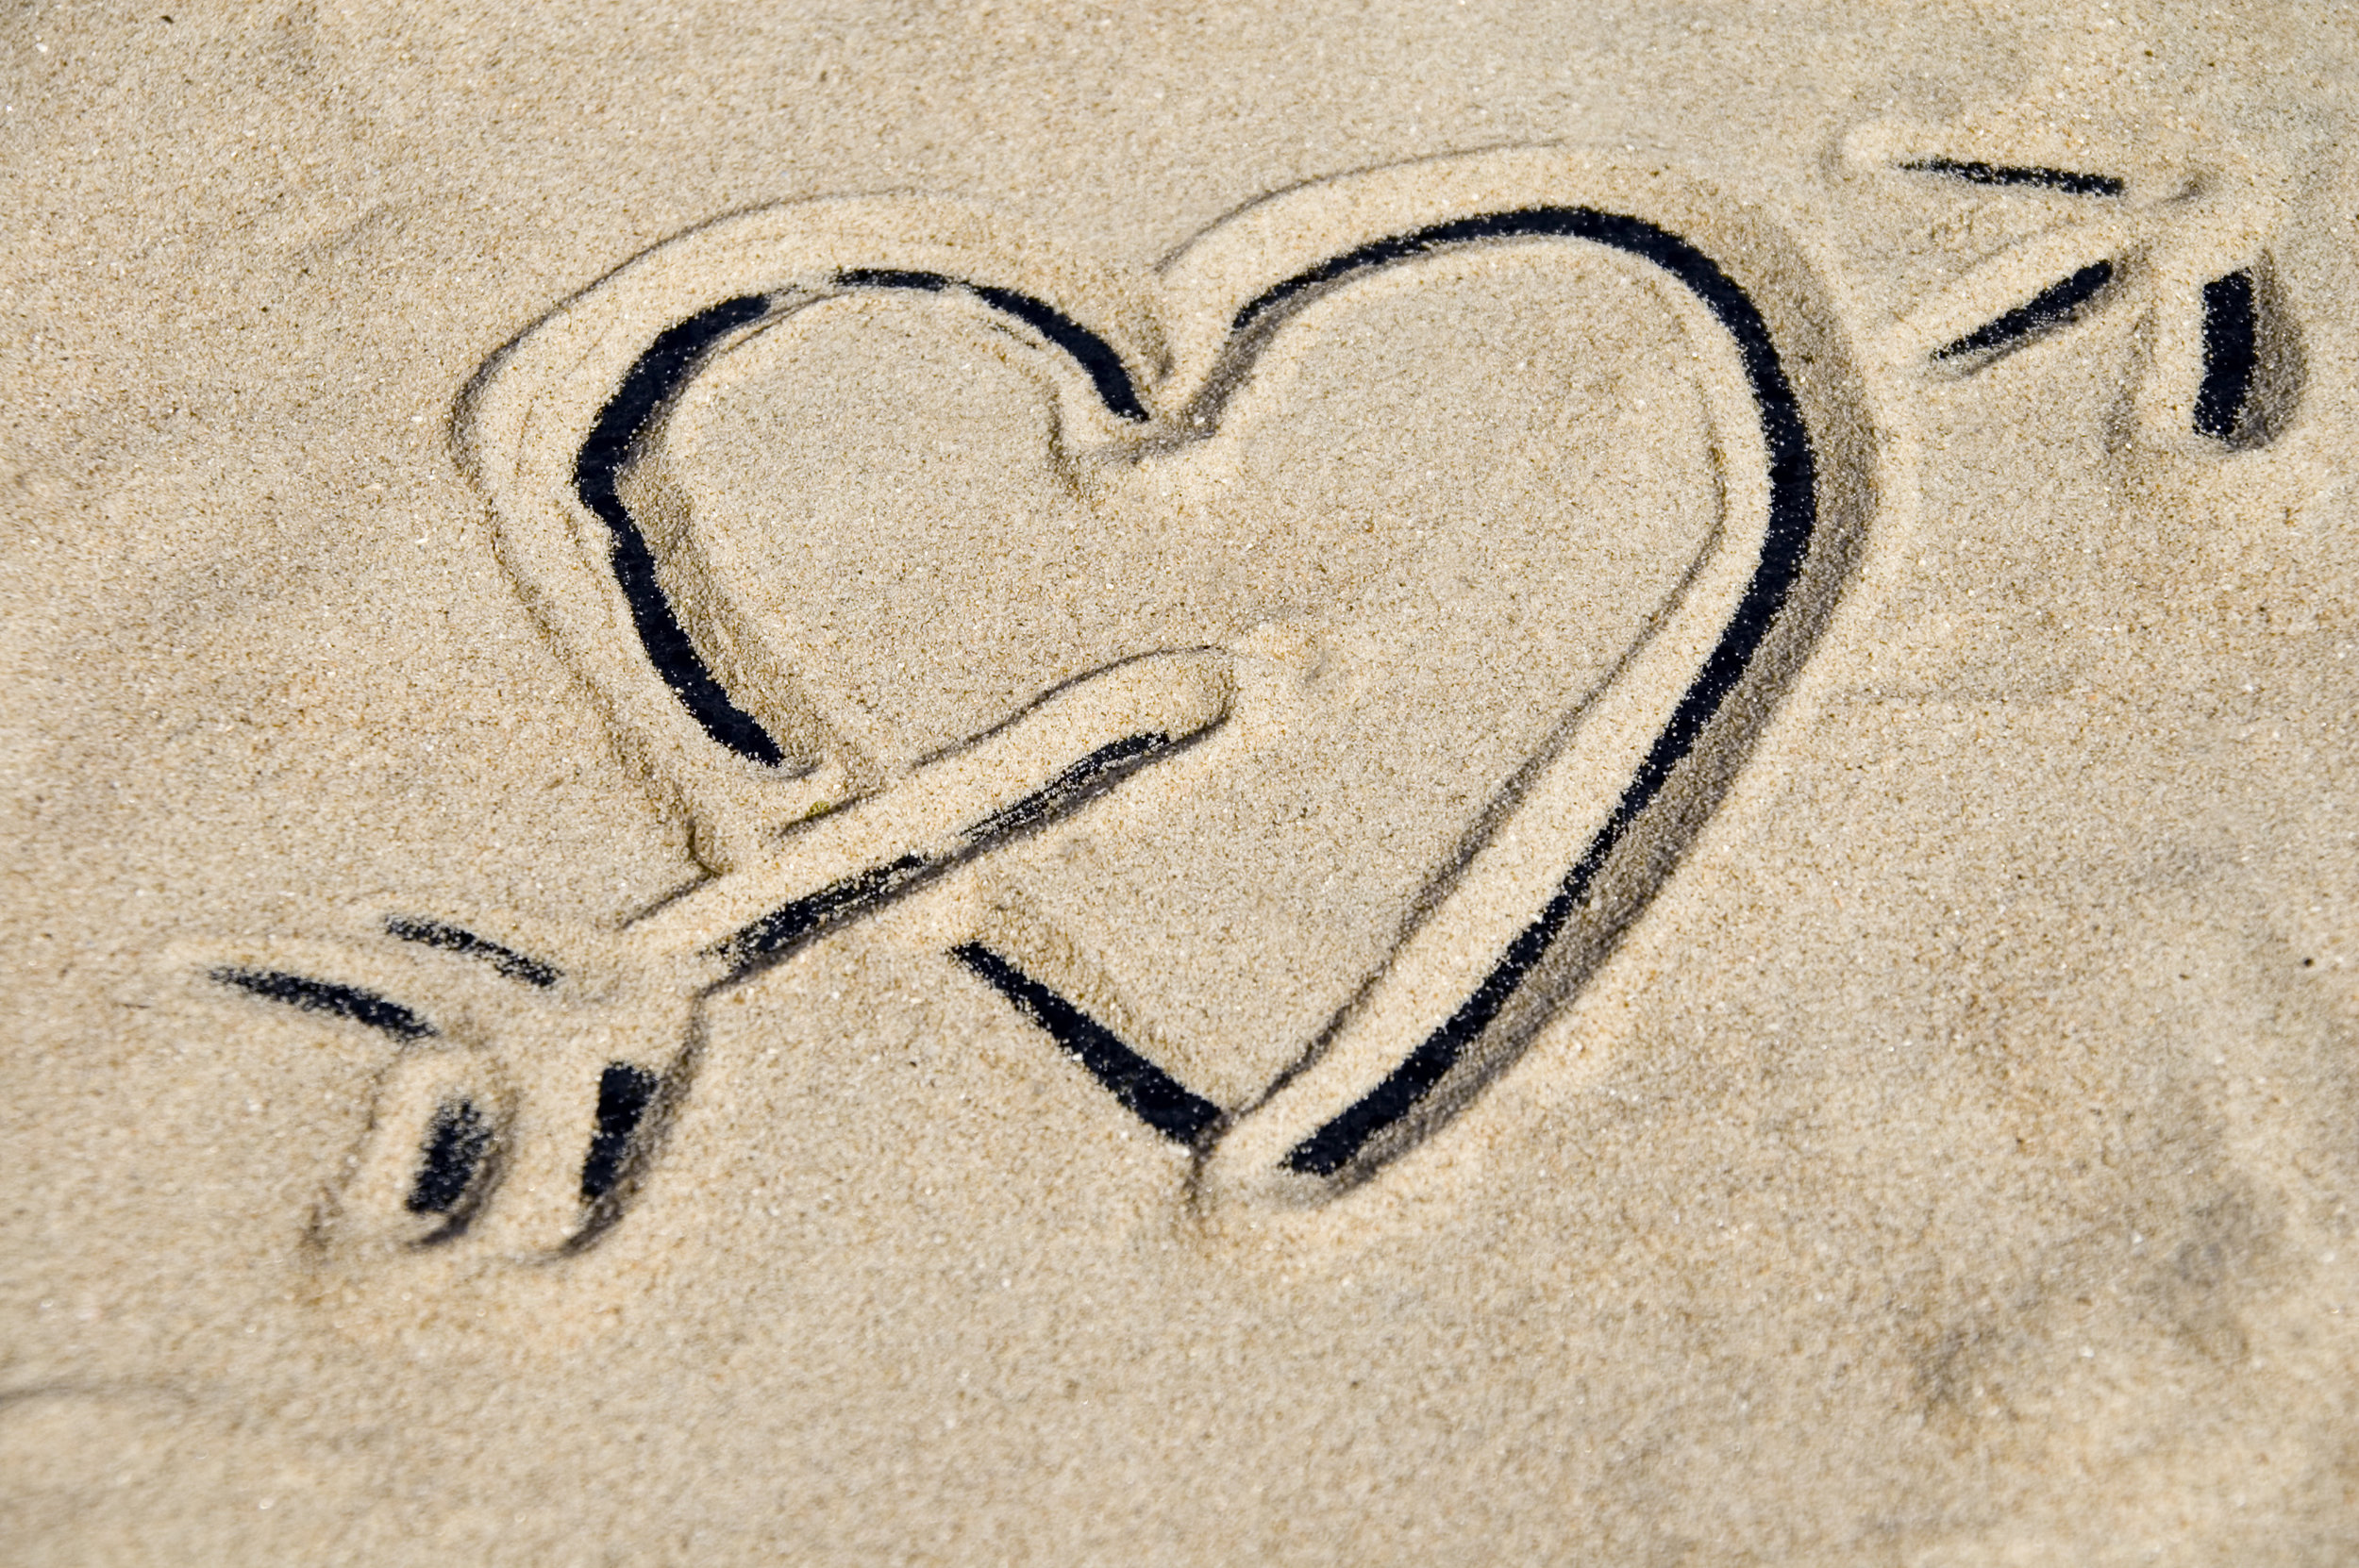 © Mamz heart depicted in sand Dreamstime